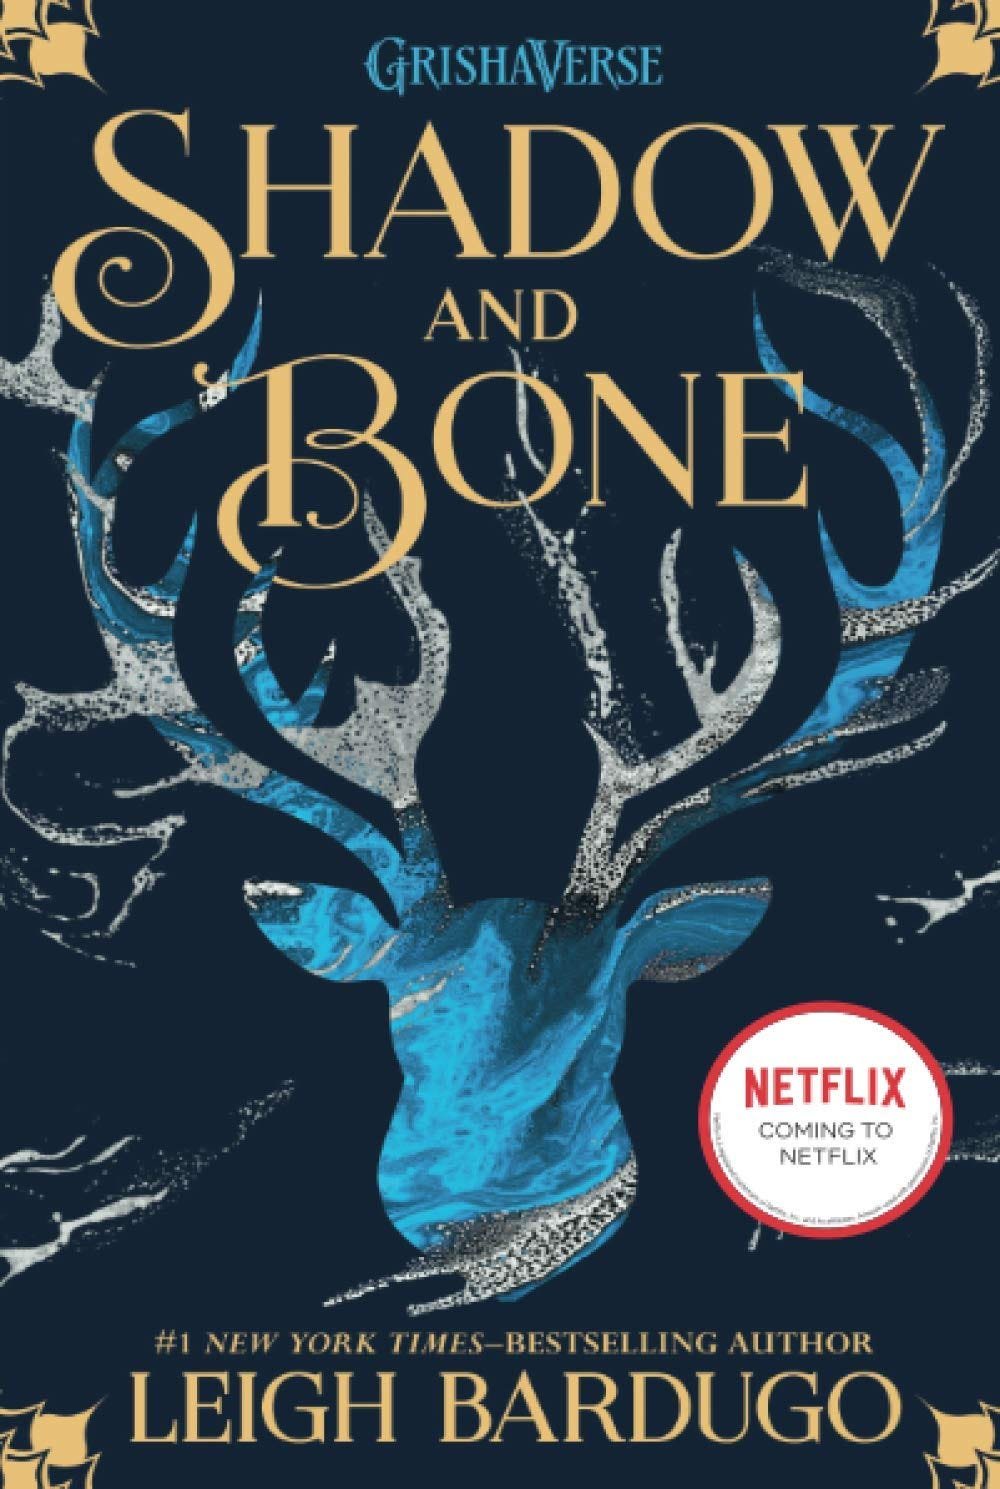 The navy blue cover of Shadow and Bone by Leigh Bardugo, depicting a light blue and gray stag and the rest of the text in gold, swirling font.